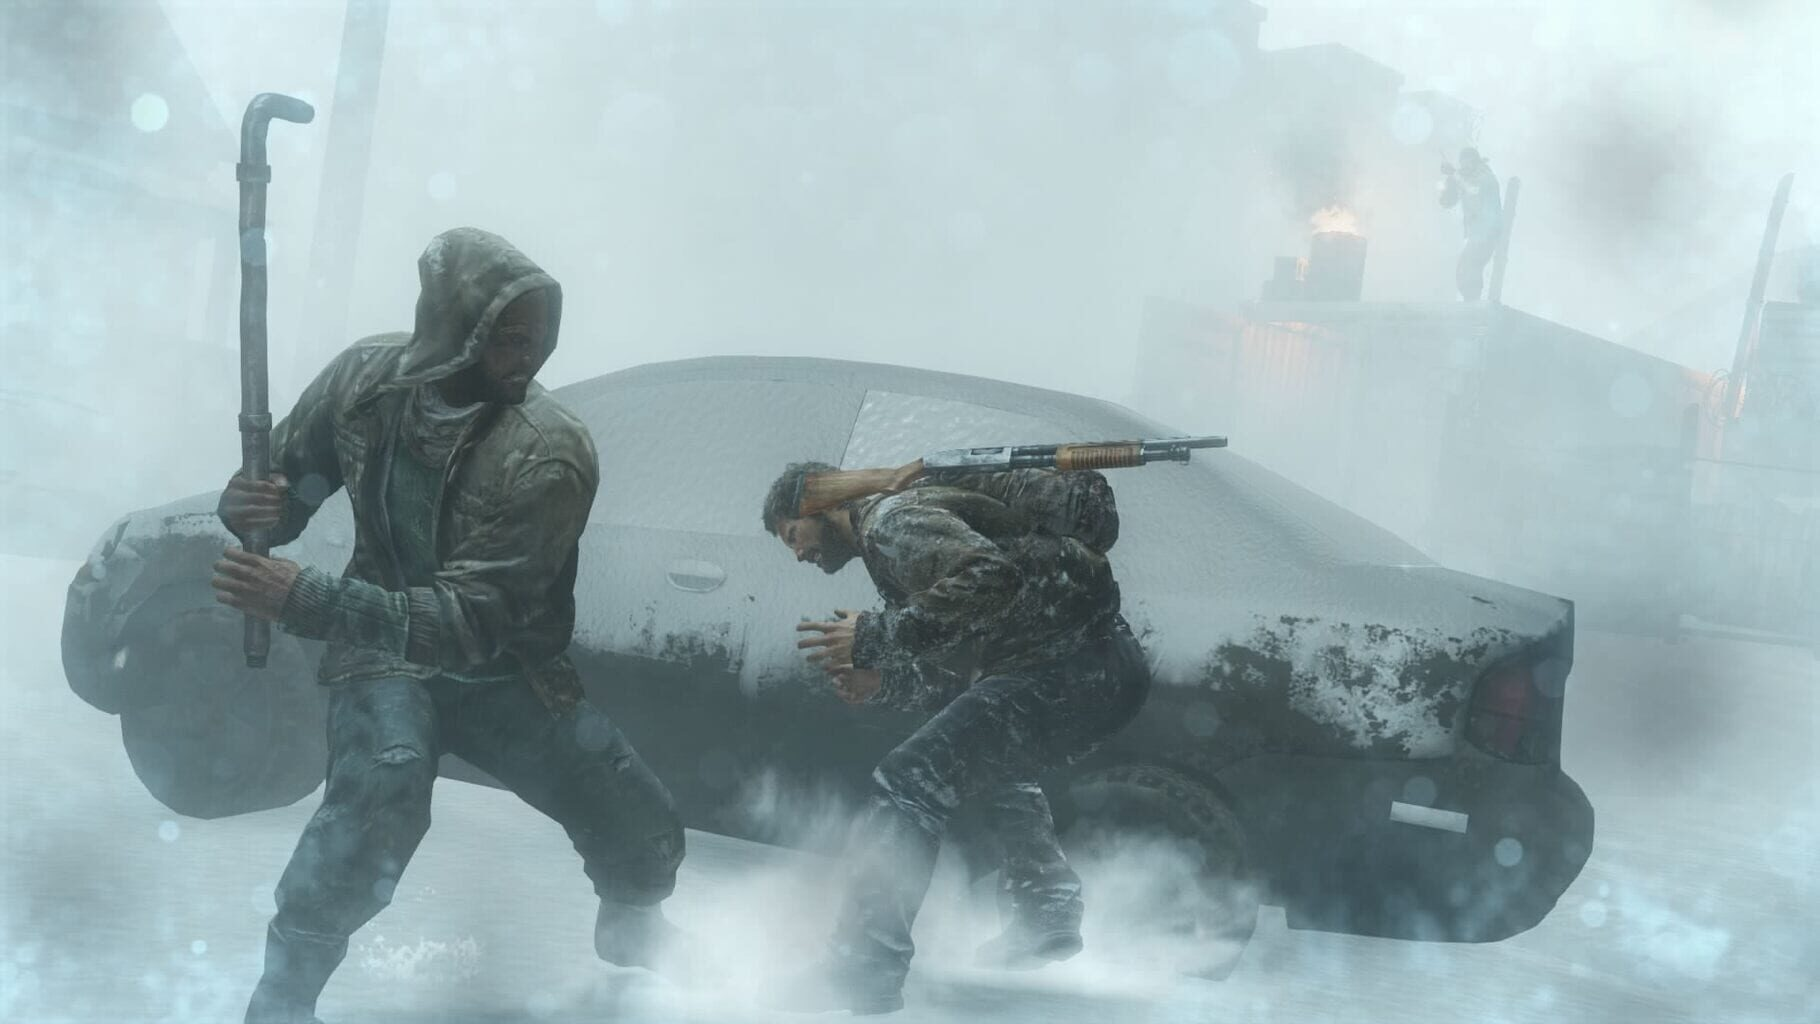 Gameplay Screenshot from The Last of Us Remastered